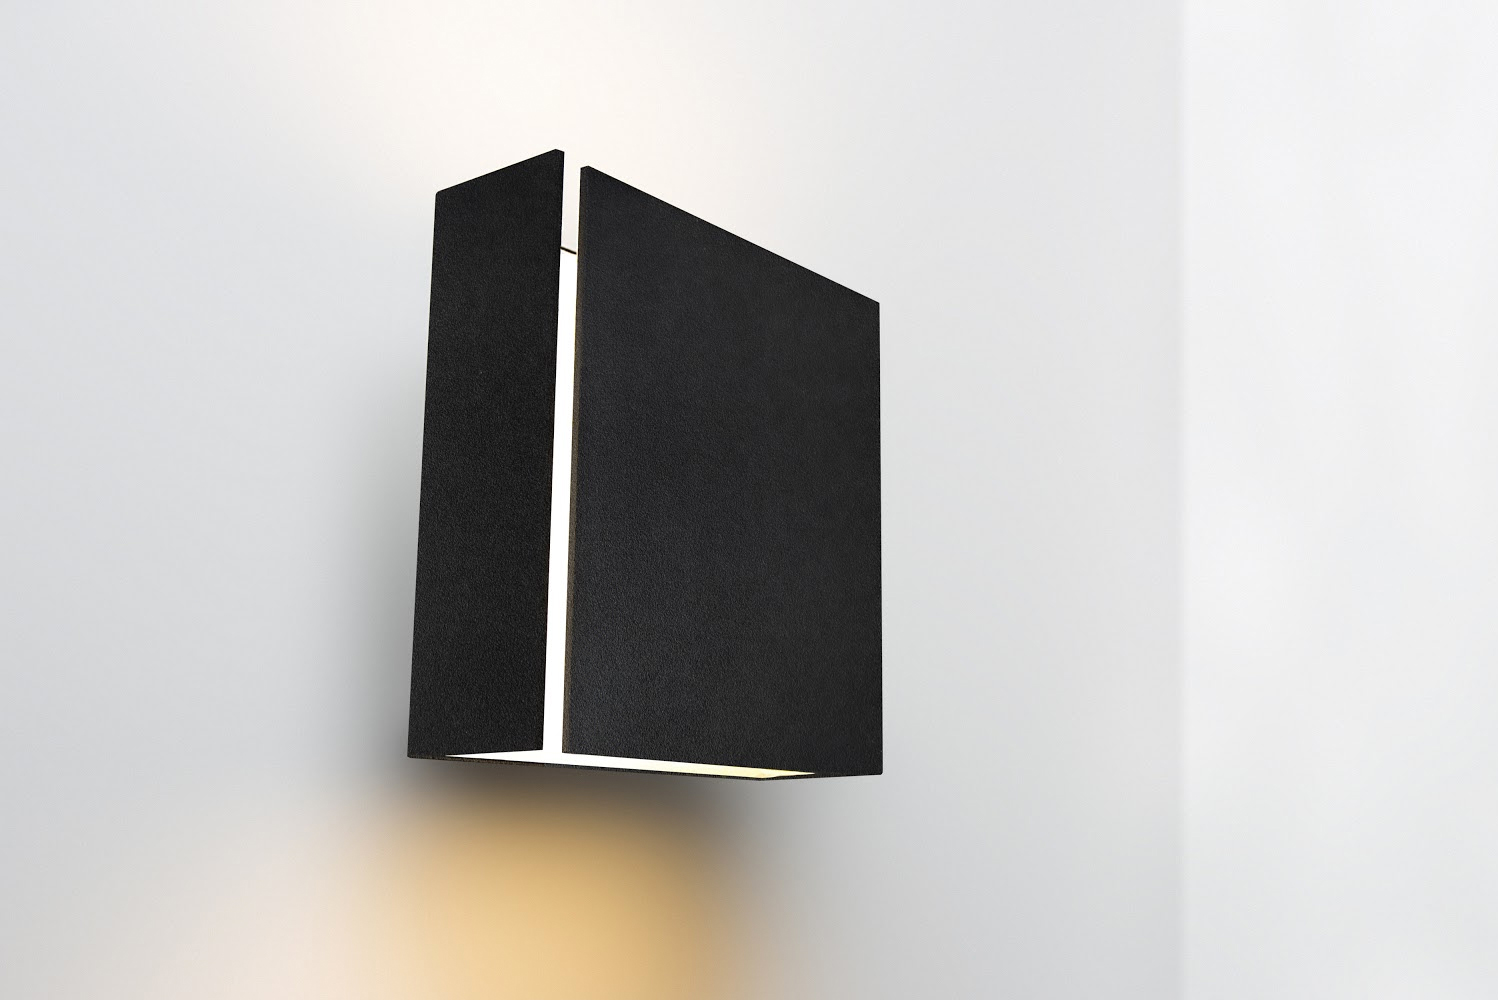 This luminaire is the result of improved folding techniques and is a wall-mounted up- and downlight that consists of a single folded plate with a single, fine split, from which light can radiate.